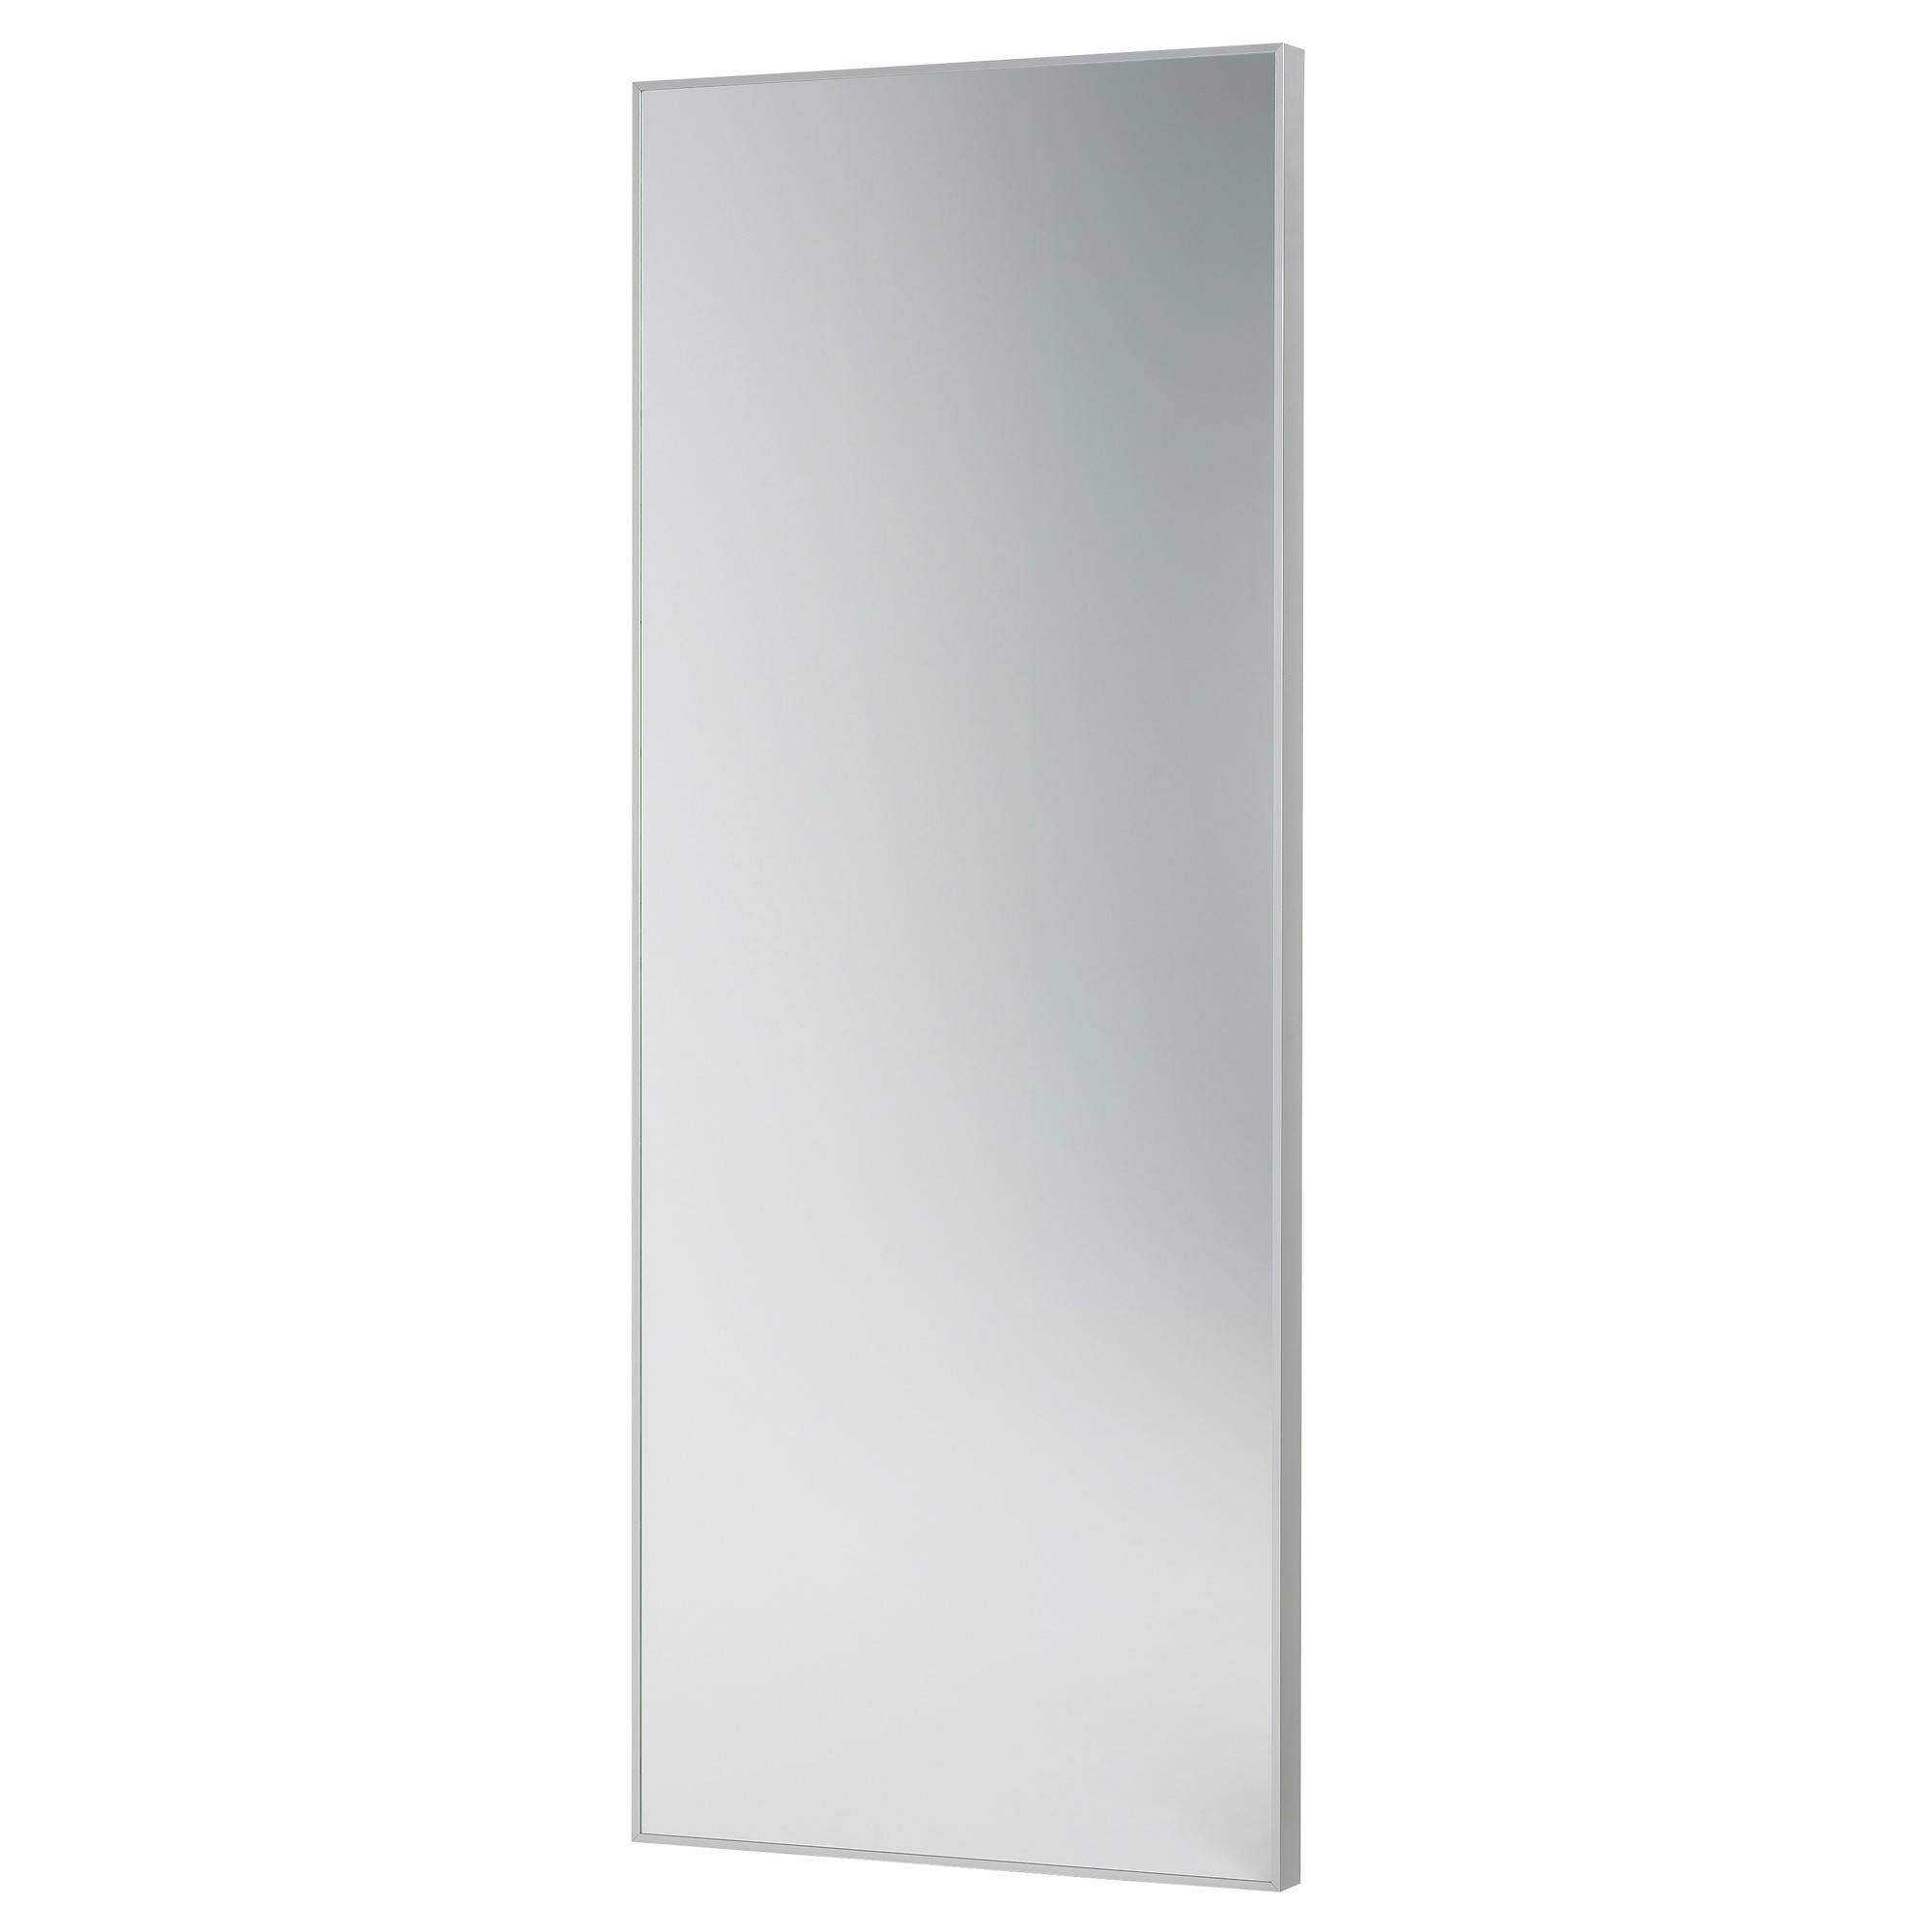 Mirrors – Ikea For Long Mirrors (View 4 of 15)